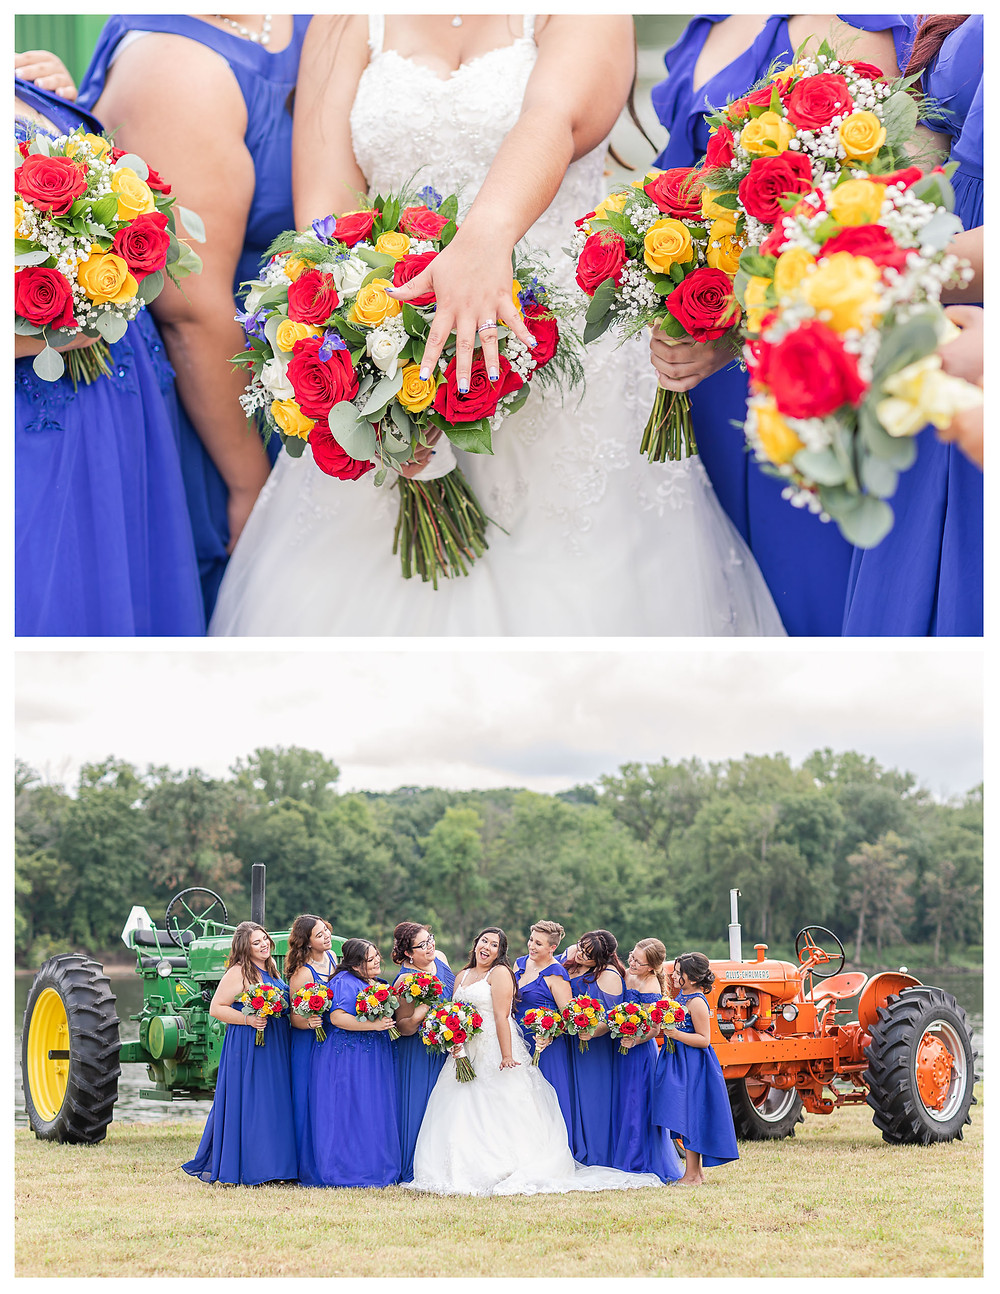 Rustic Beauty and the Beast Inspired Wedding in Ottawa, IL wedding photographer joliet wedding photographer chicago wedding photographer wedding pictures farmstyle farmhouse farmhouse decor belle red and blue wedding inspo illinois wedding photographer illinois river pictures adventures things to do in illinois red rose ruby rose teal  r2d2 star wars fun tractors john deree deere pug dog pug life chevrolette classic car